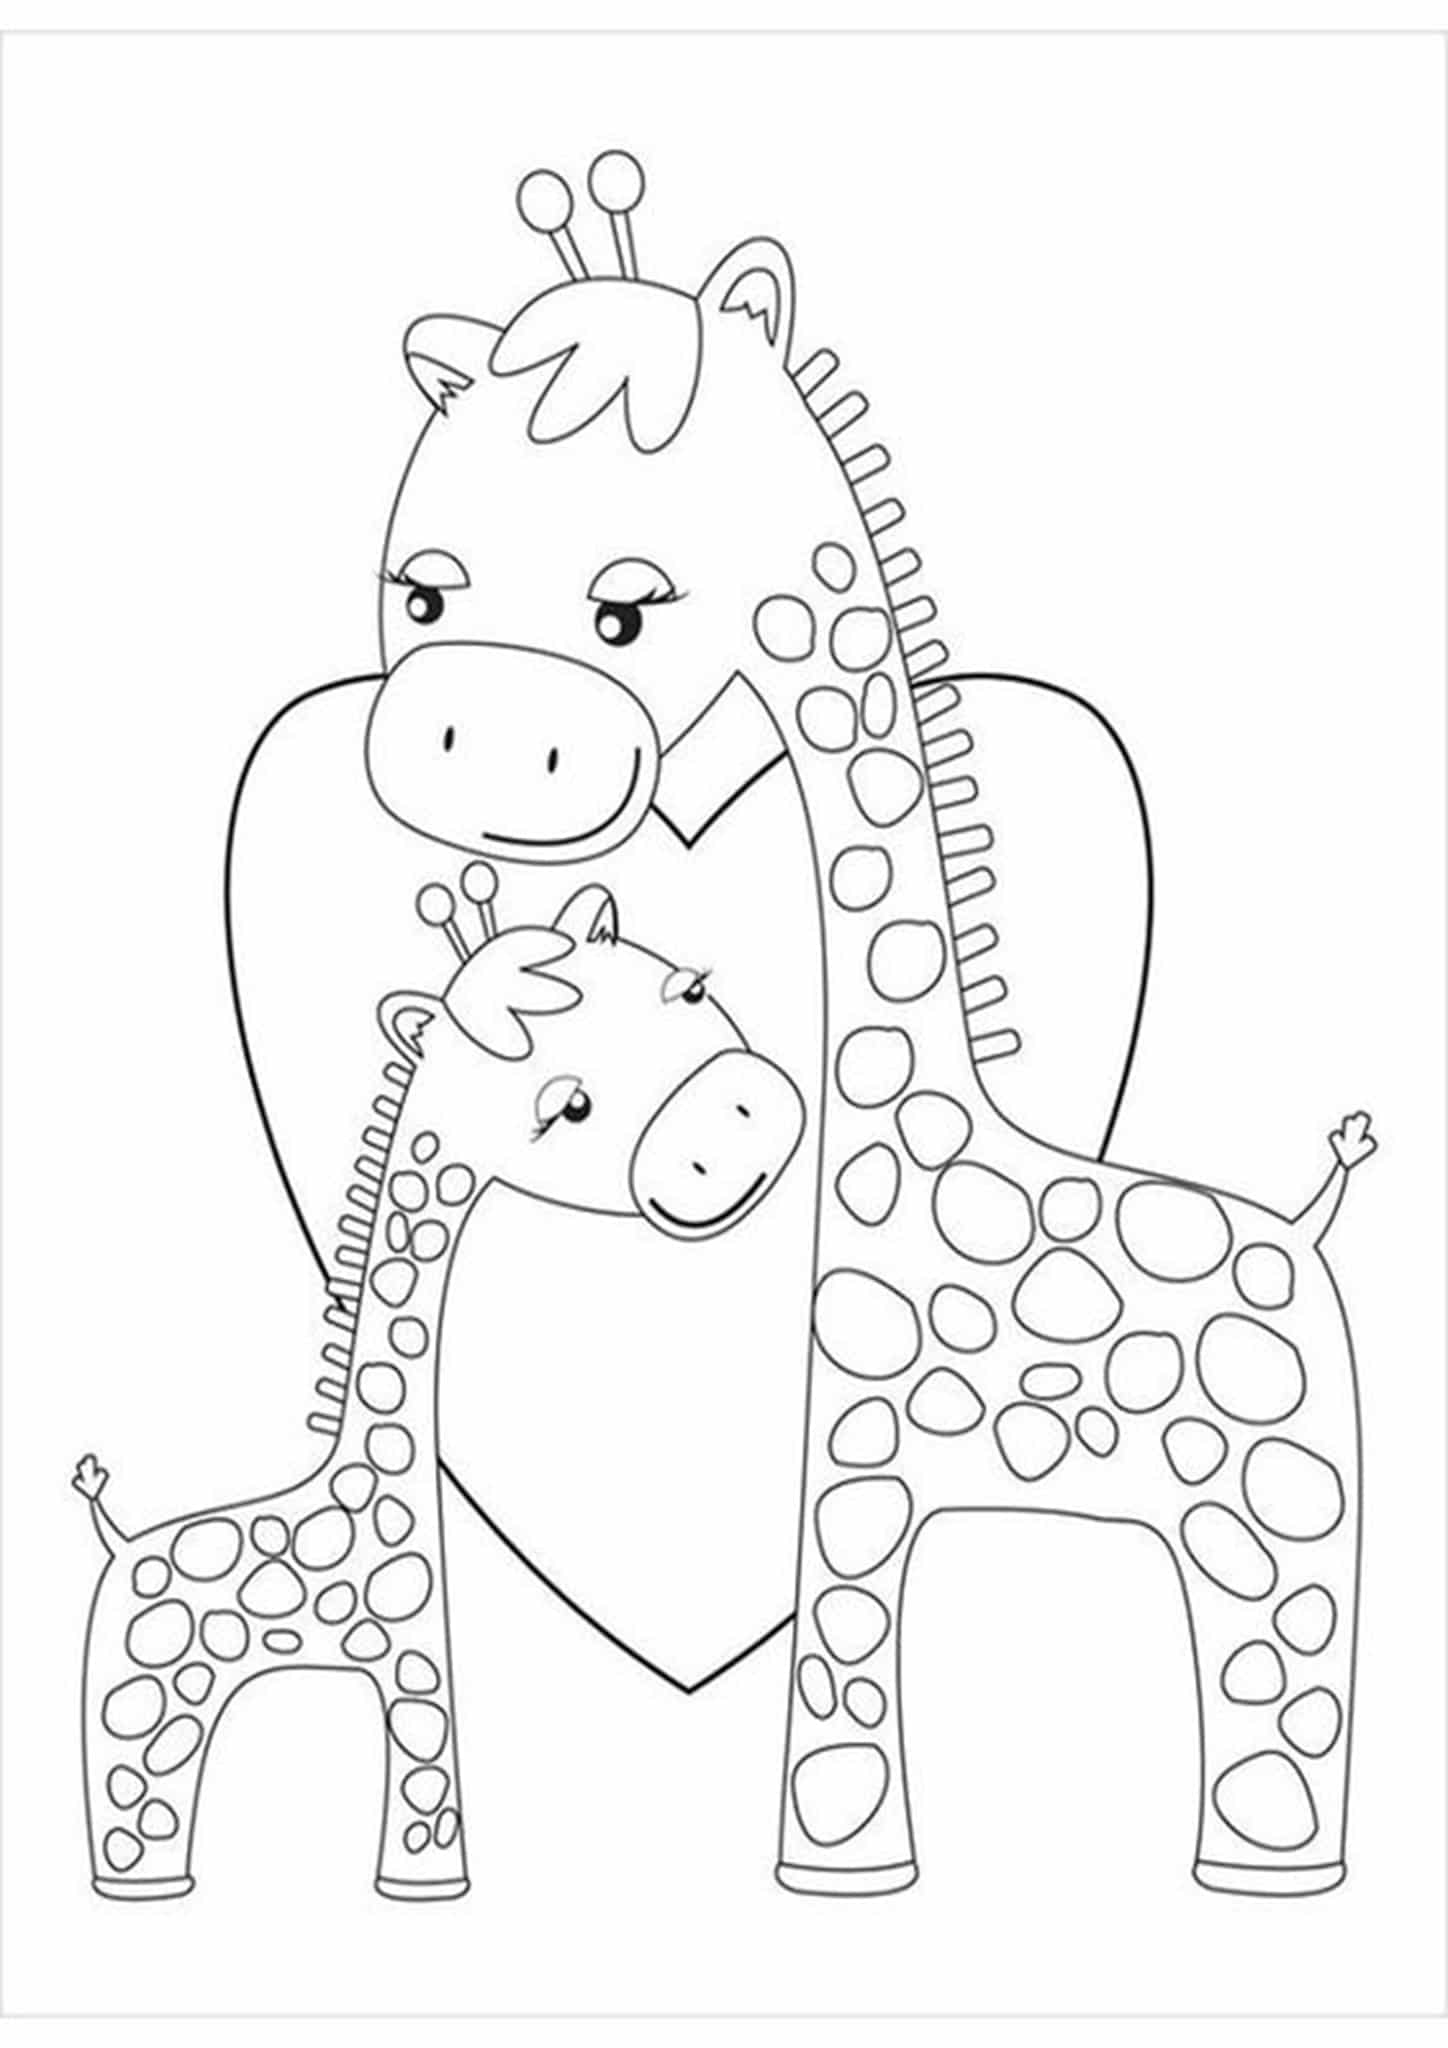 coloring sheets giraffe free easy to print giraffe coloring pages tulamama coloring sheets giraffe